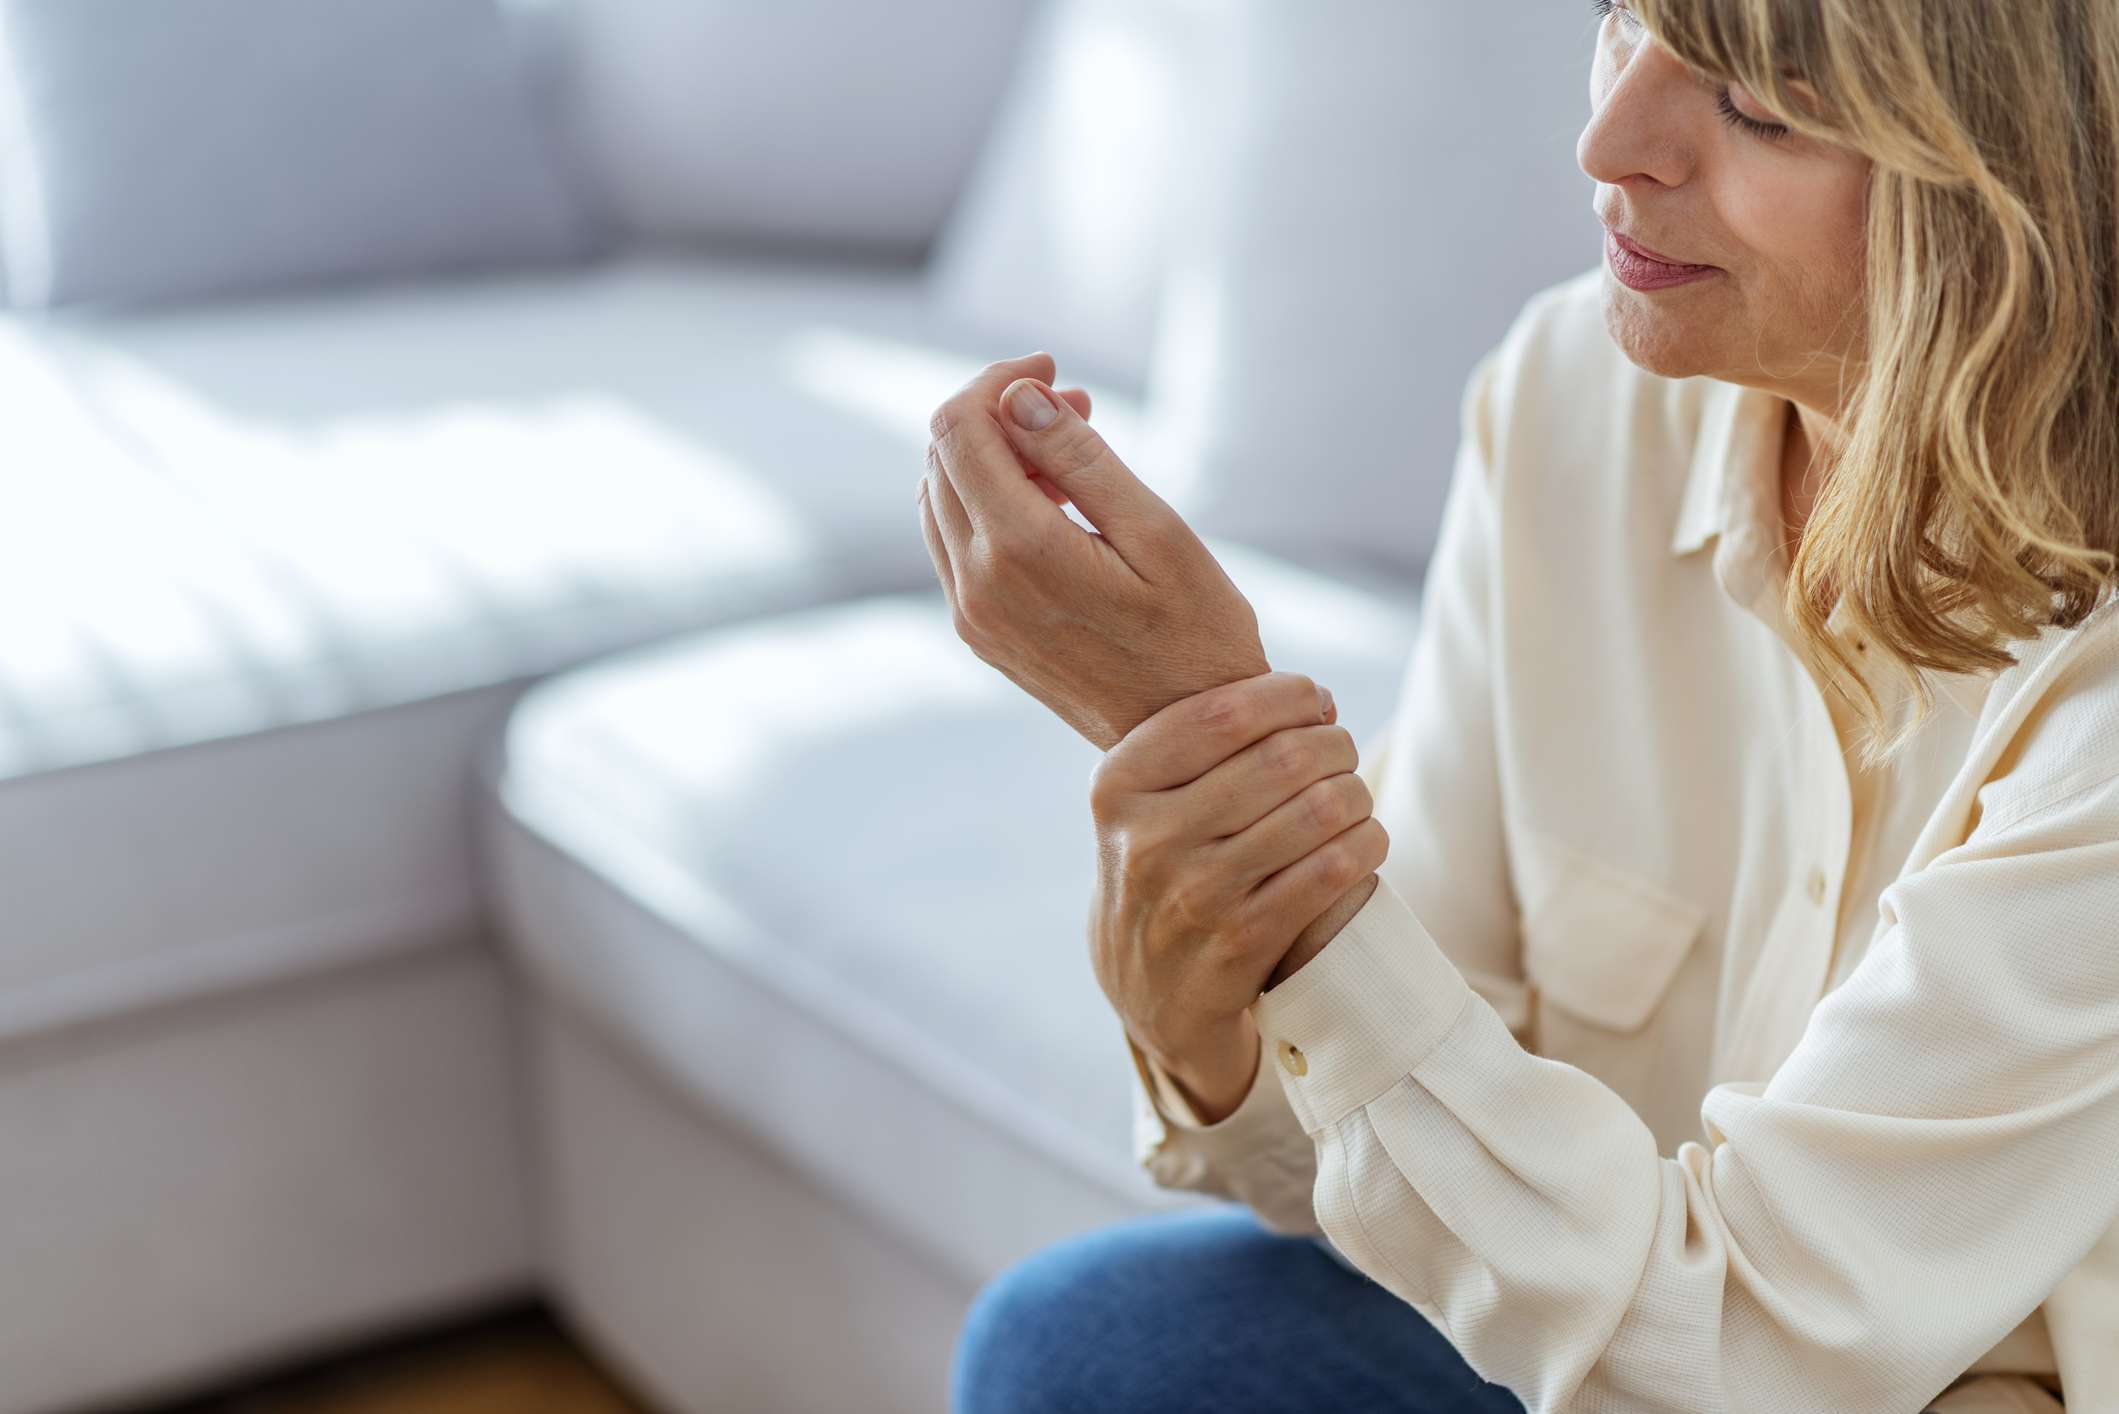 Woman with wrist pain looking at her hand